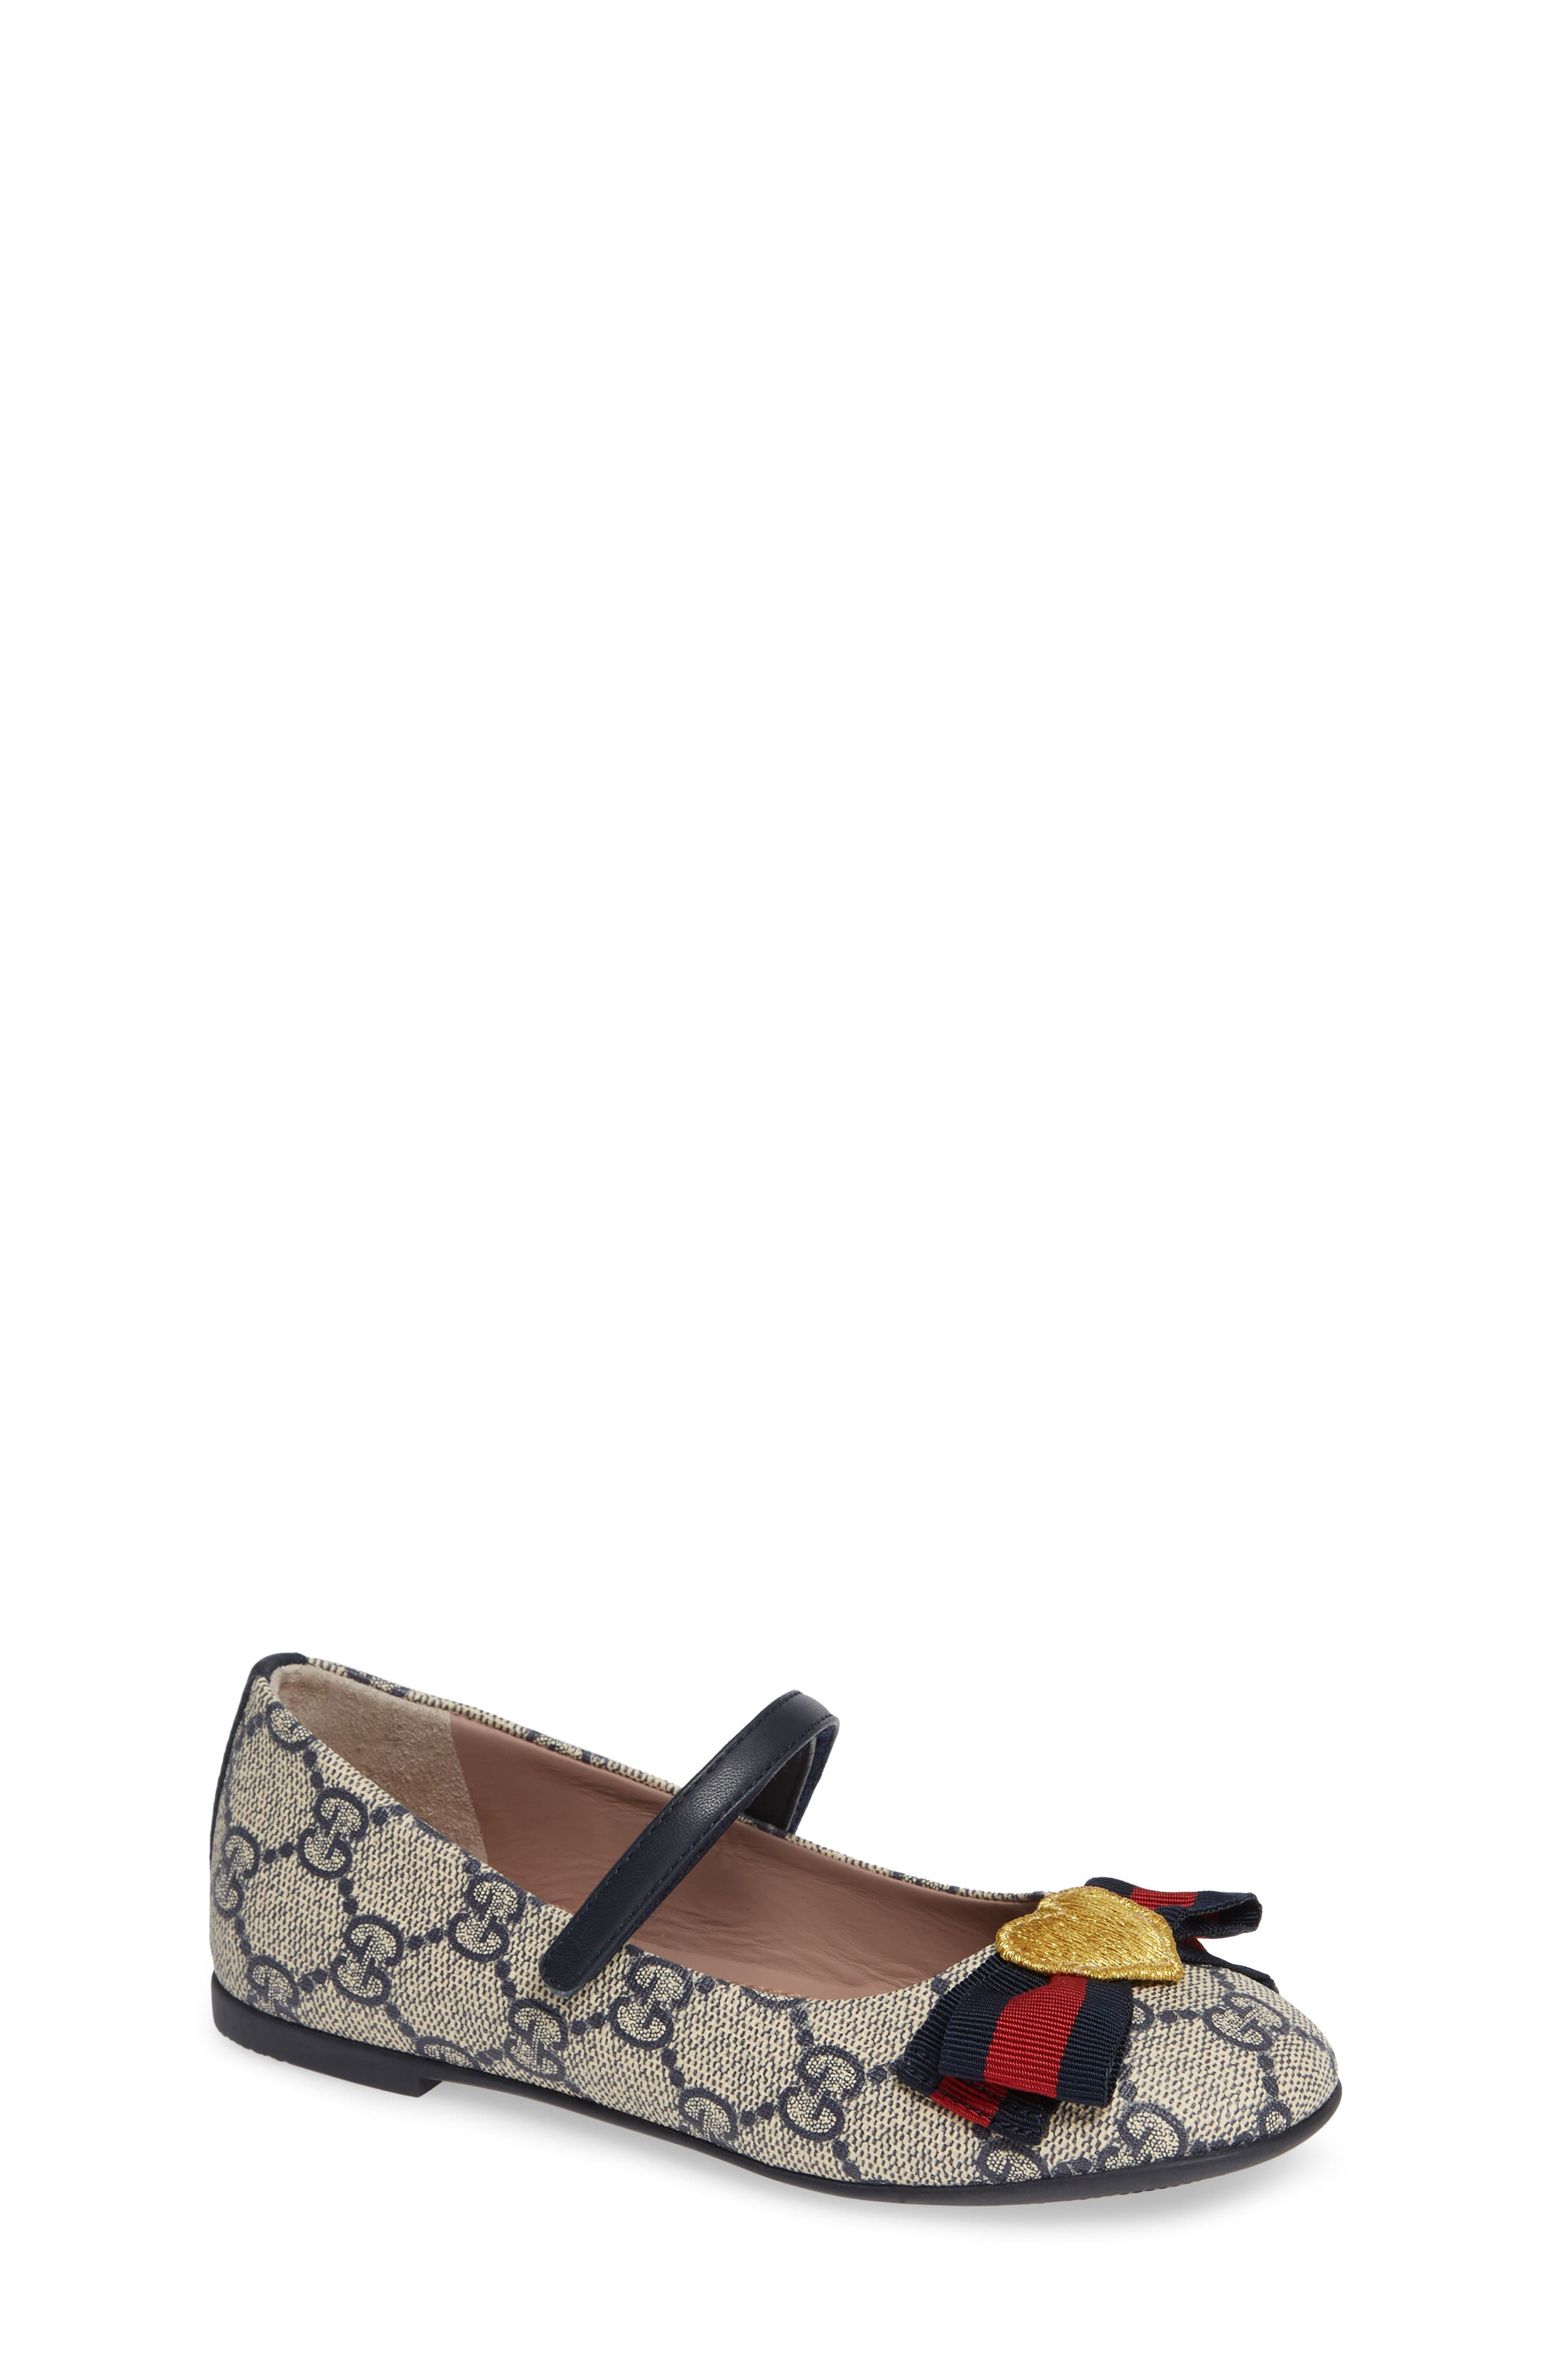 'Erin' Mary Jane Flat,                         Main,                         color, BEIGE/BLUE